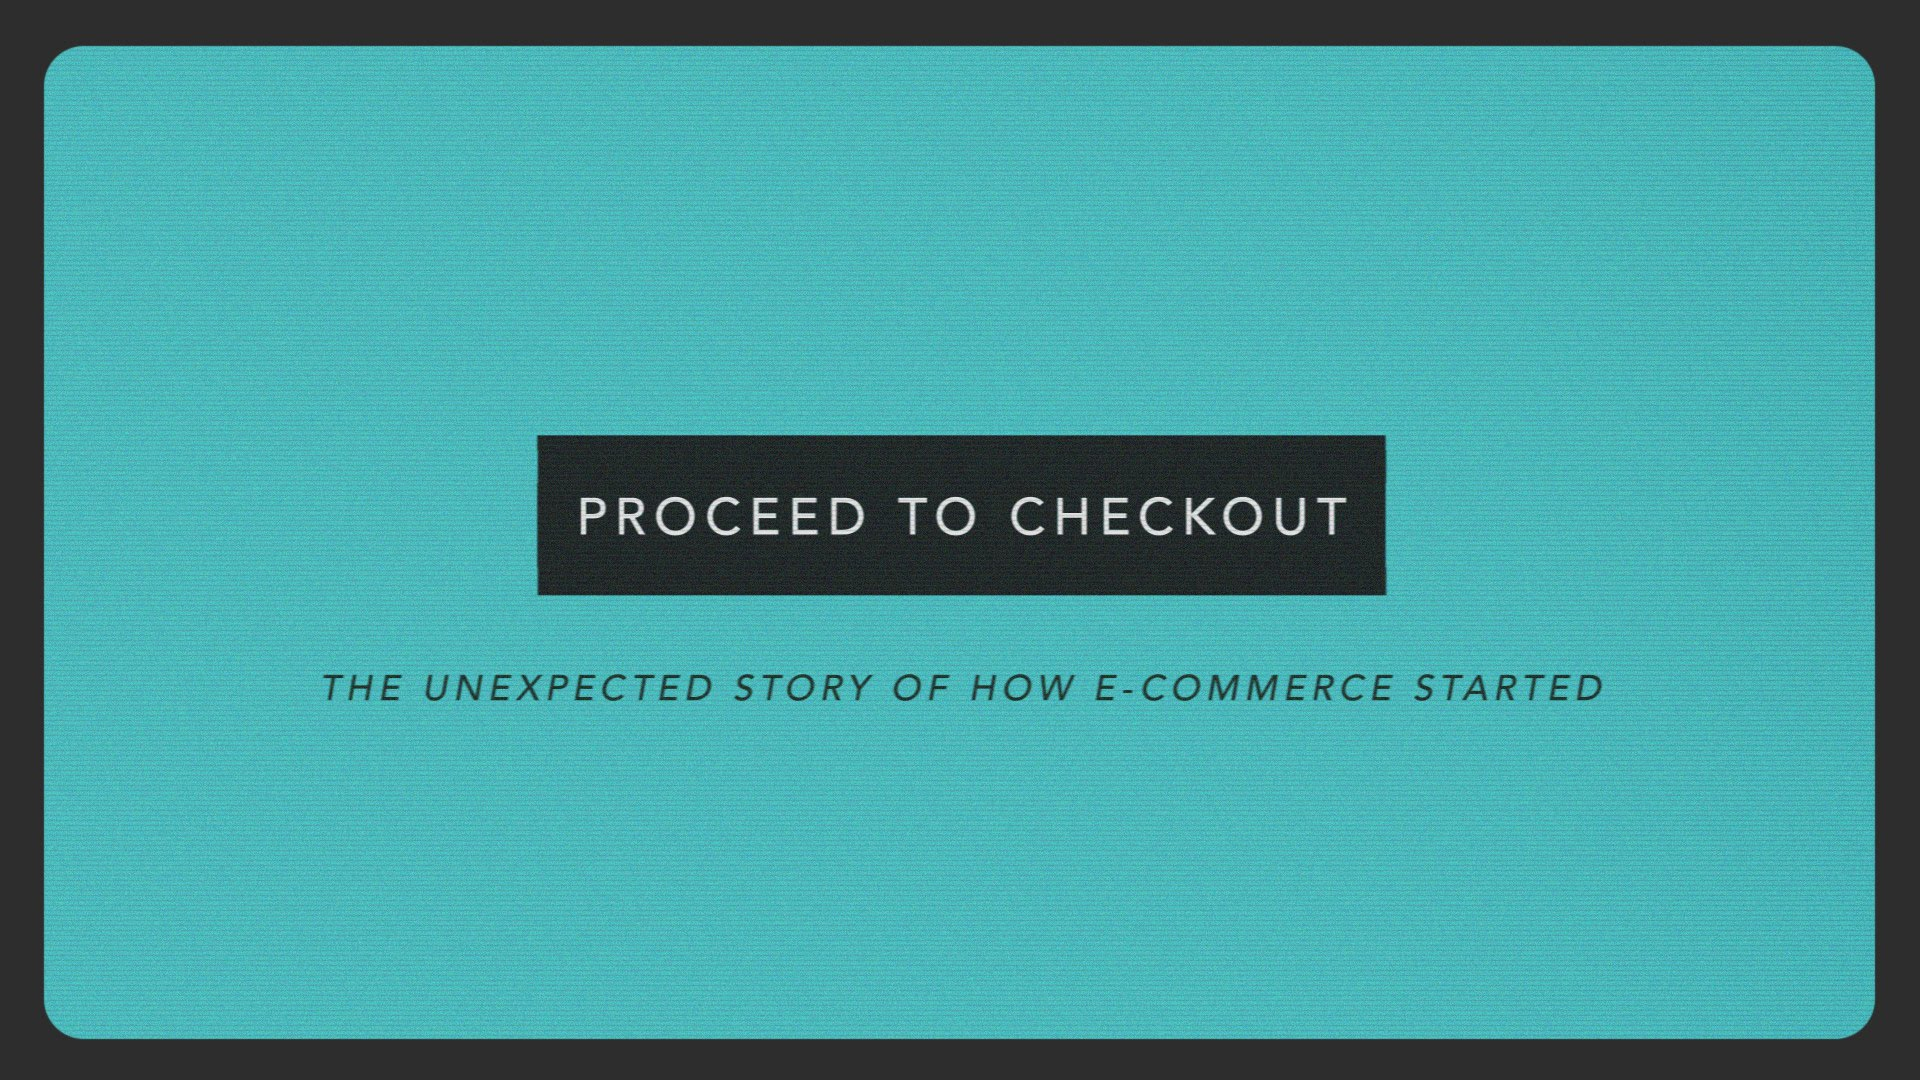 proceed-to-checkout-historia-do-e-commerce-comercio-eletronico